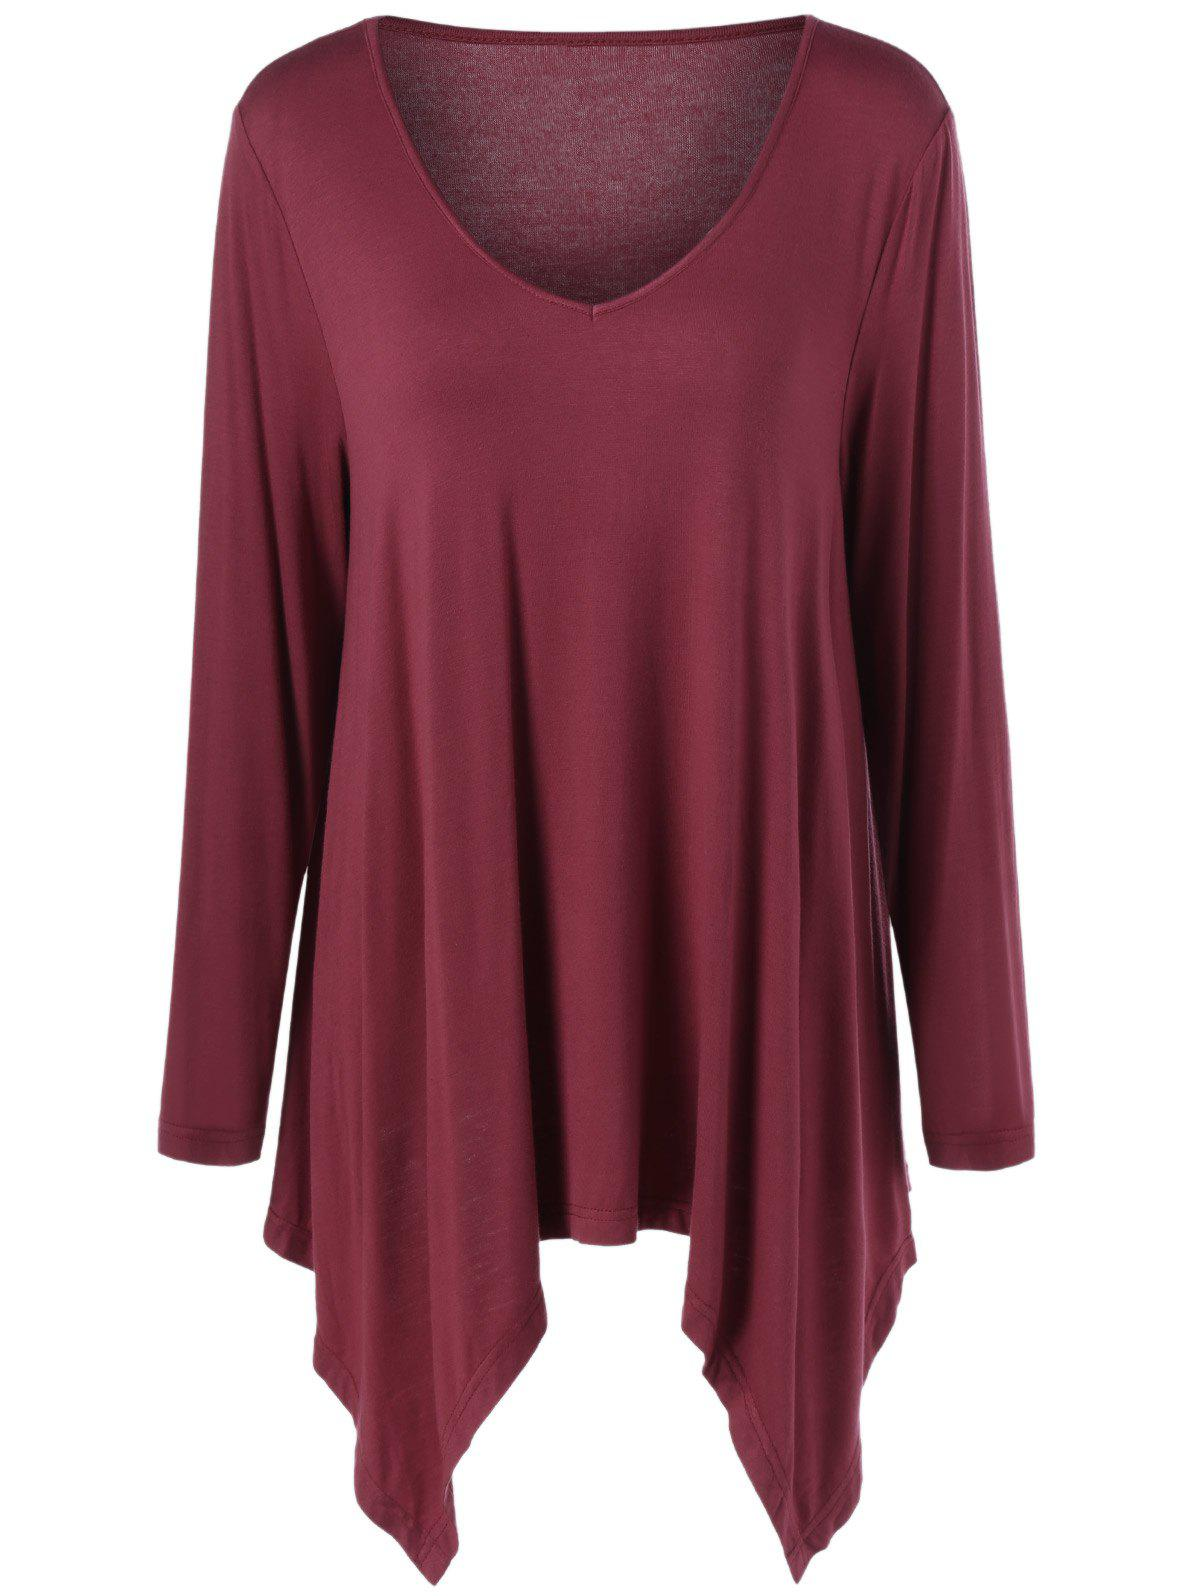 Plus Size V Neck Asymmetrical Tee - DARK RED 3XL